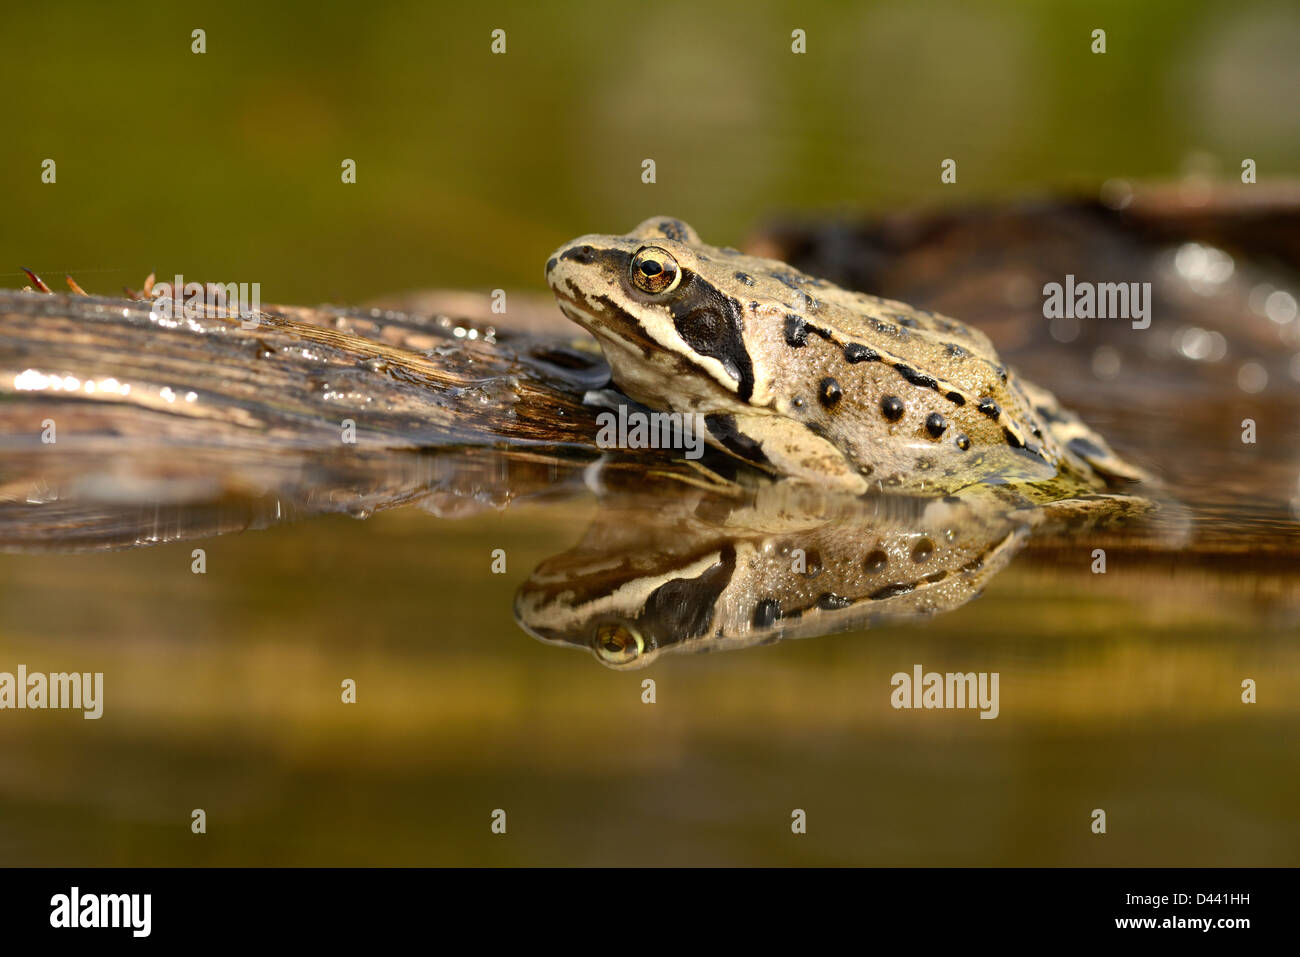 Common Frog (Rana temporaria) sat on log in the water, Oxfordshire, England, August - Stock Image